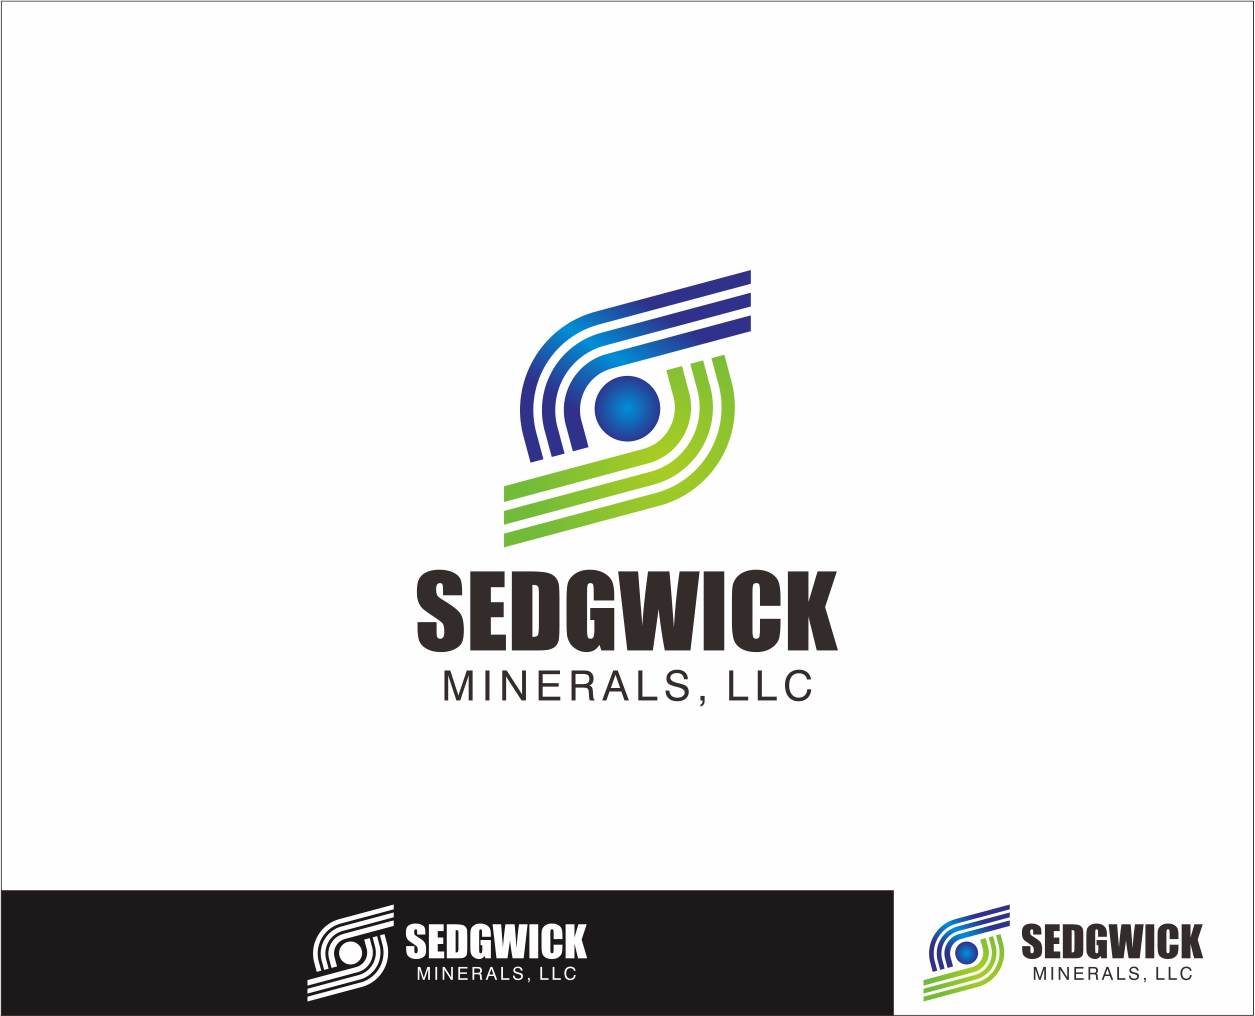 Logo Design by Armada Jamaluddin - Entry No. 57 in the Logo Design Contest Inspiring Logo Design for Sedgwick Minerals, LLC.